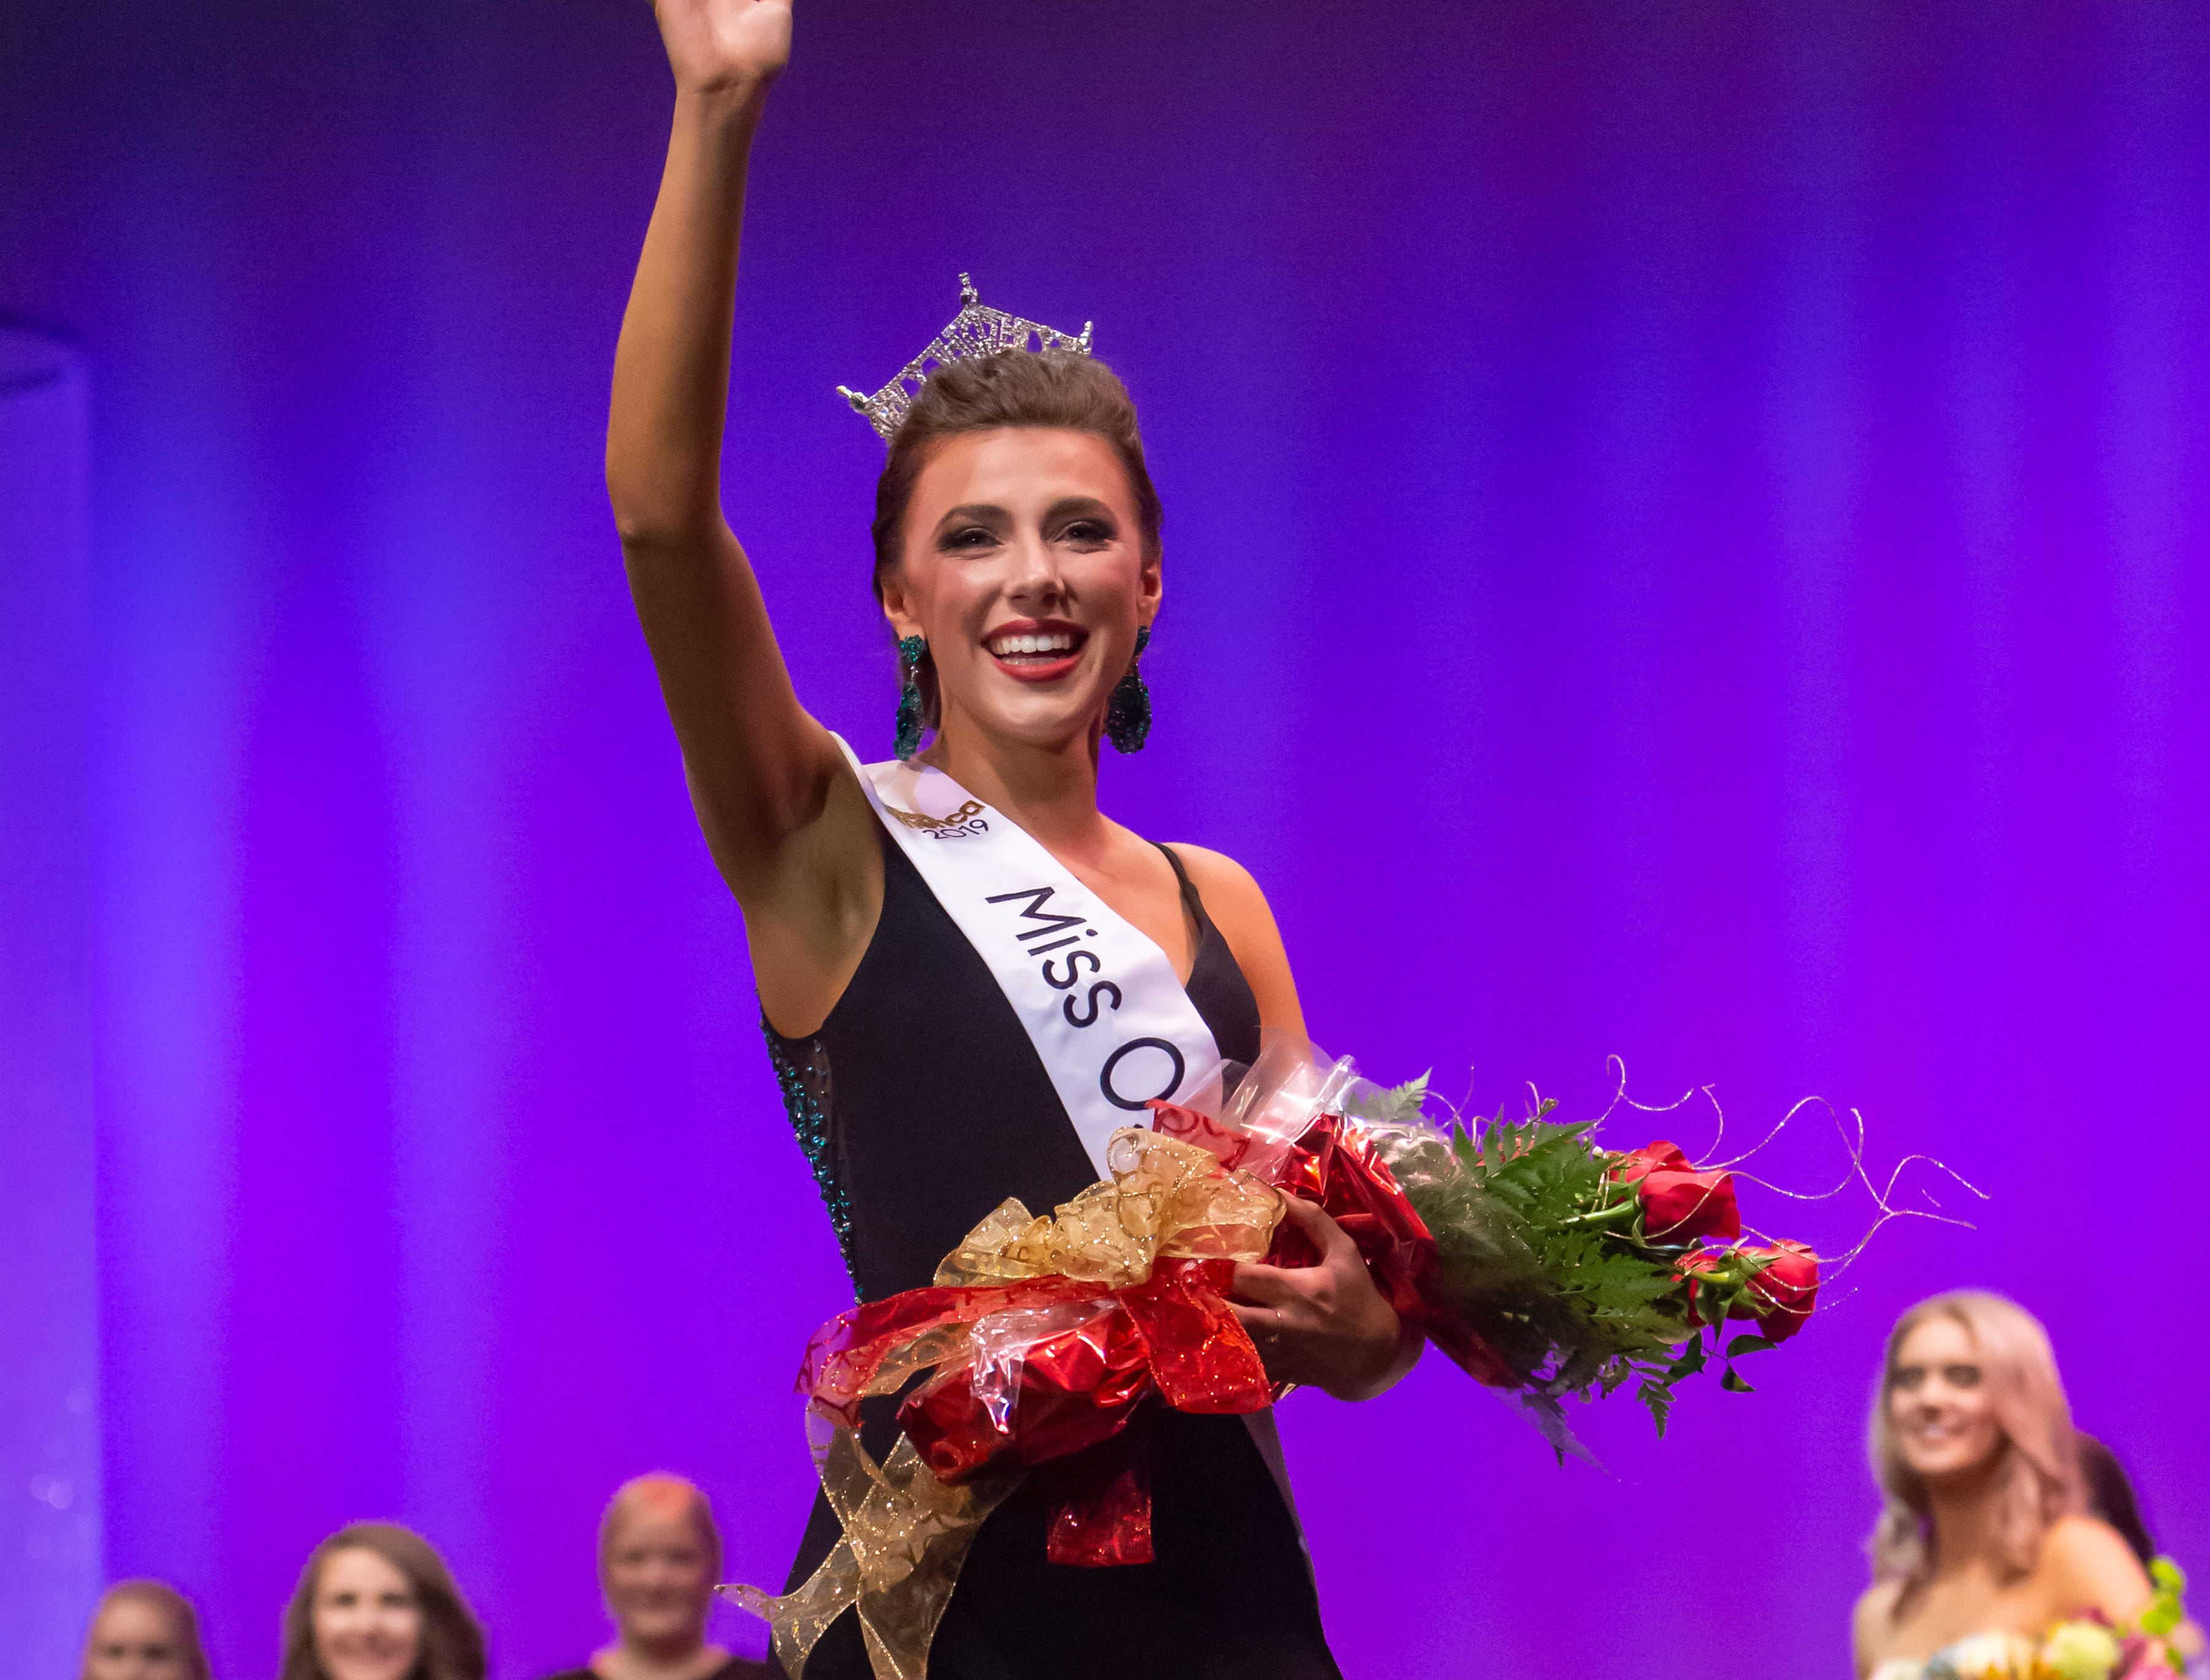 Katrina Mazier waves to the audience as the new Miss Oshkosh 2019 during the Miss Oshkosh Scholarship Pageant Saturday, March 2, 2019, at Alberta Kimball Auditorium in Oshkosh, Wis.